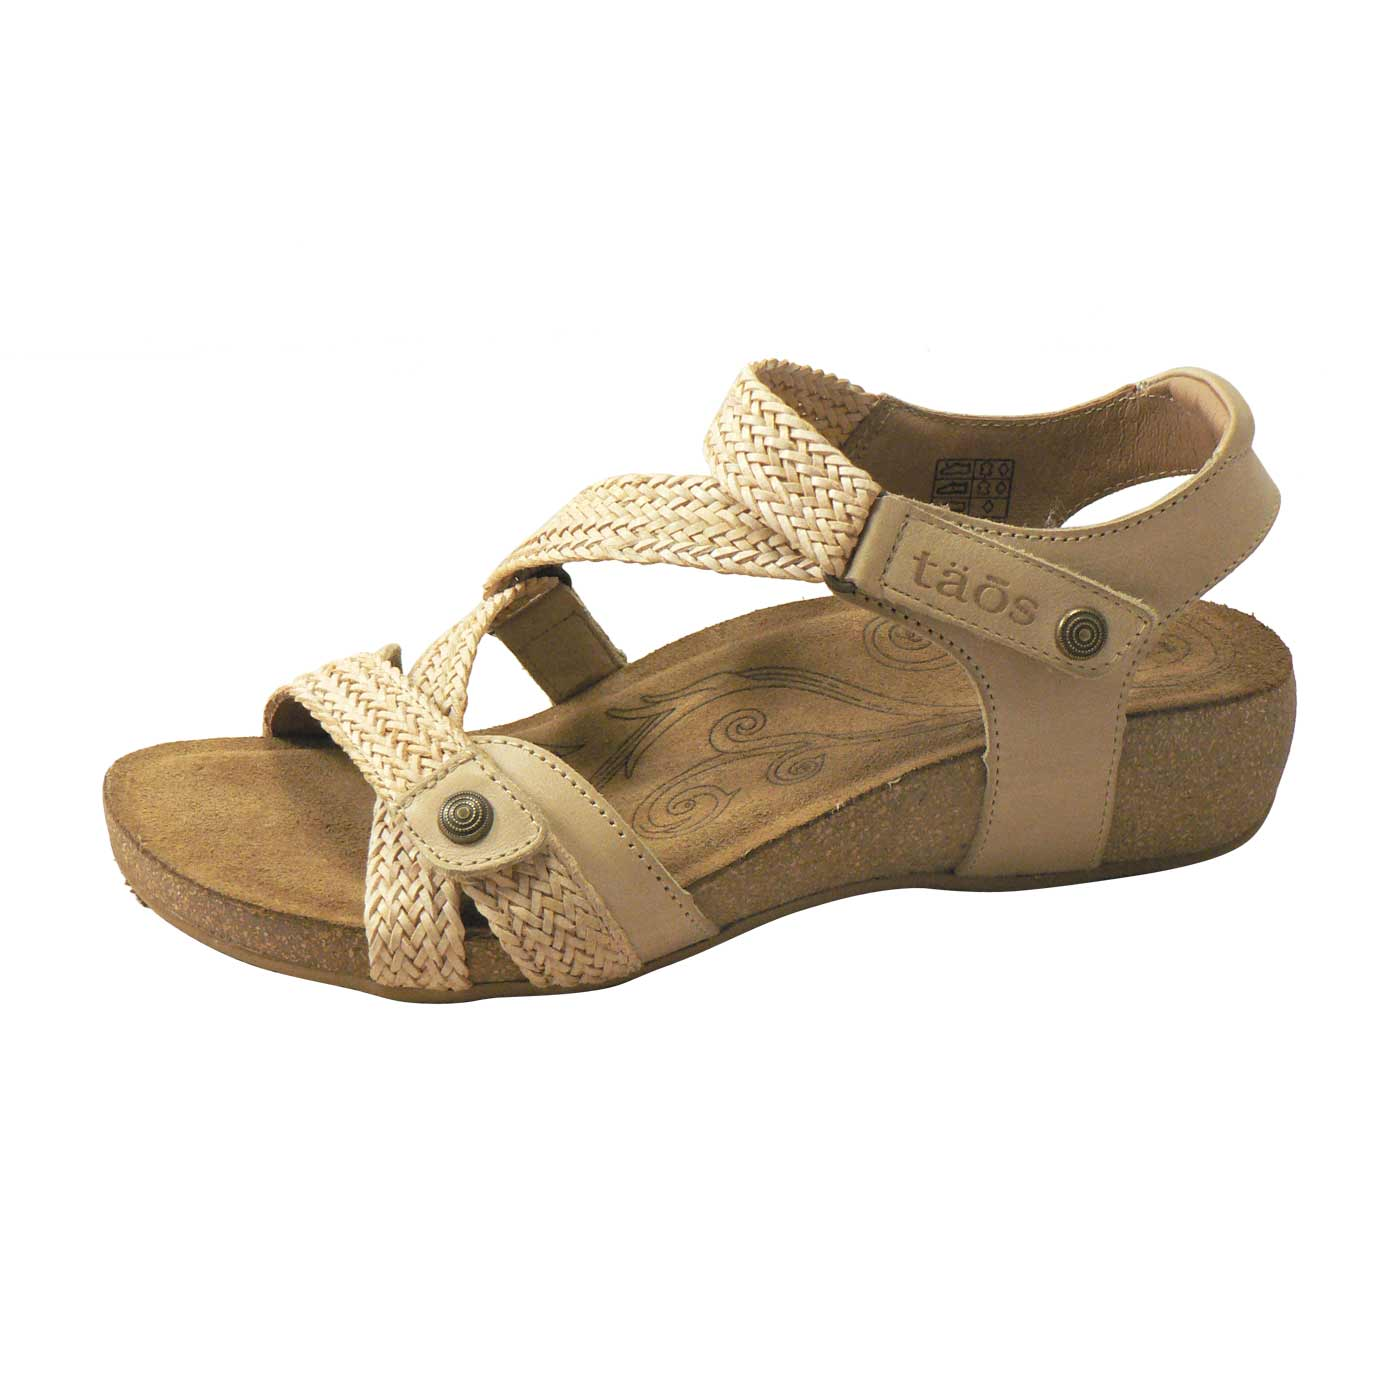 3951b5f0e Trulie - Nude - Shop Womens Shoes online